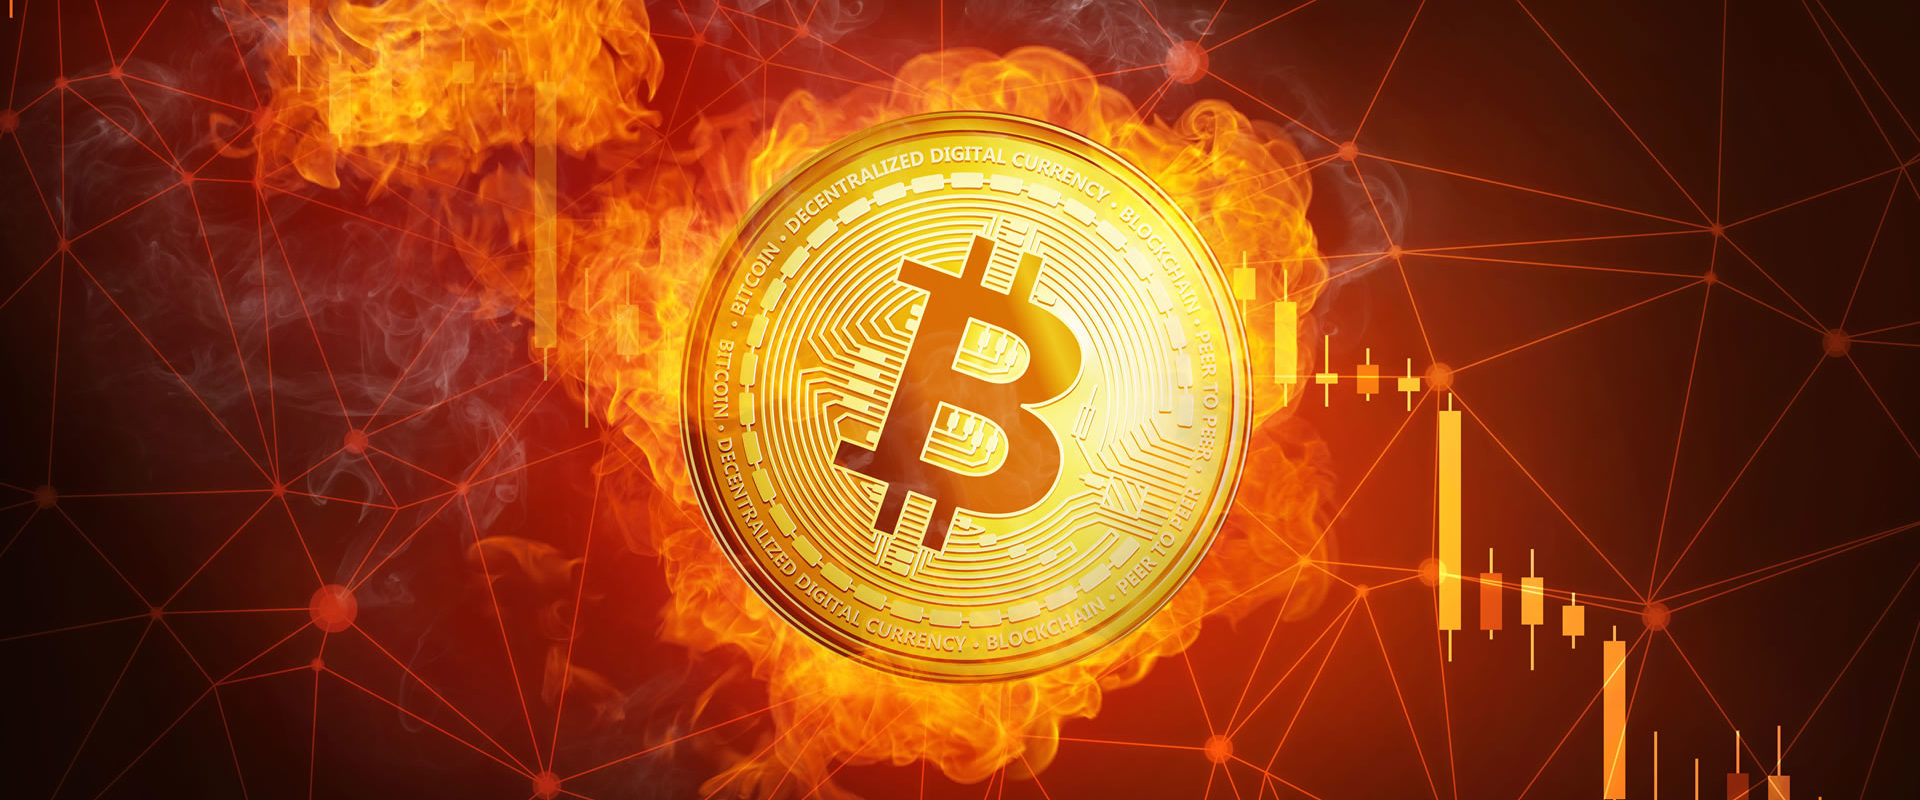 Bitcoin Bounces To $8,100, Yet Analysts See Potential For Healthy Pullback